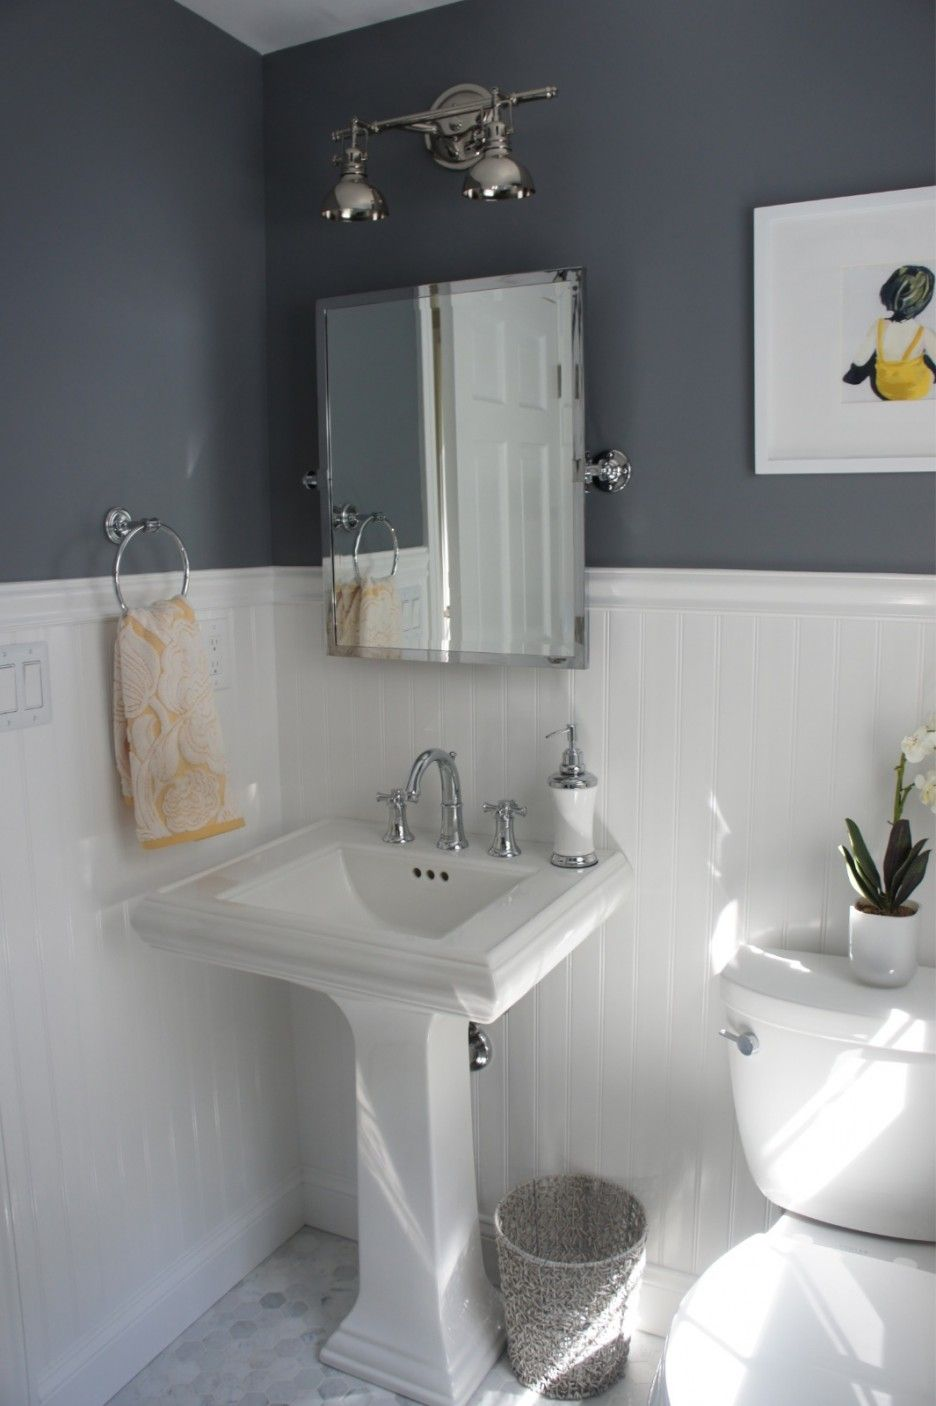 Captivating Modern Bathroom Decorating Ideas Showcasing Beadboard